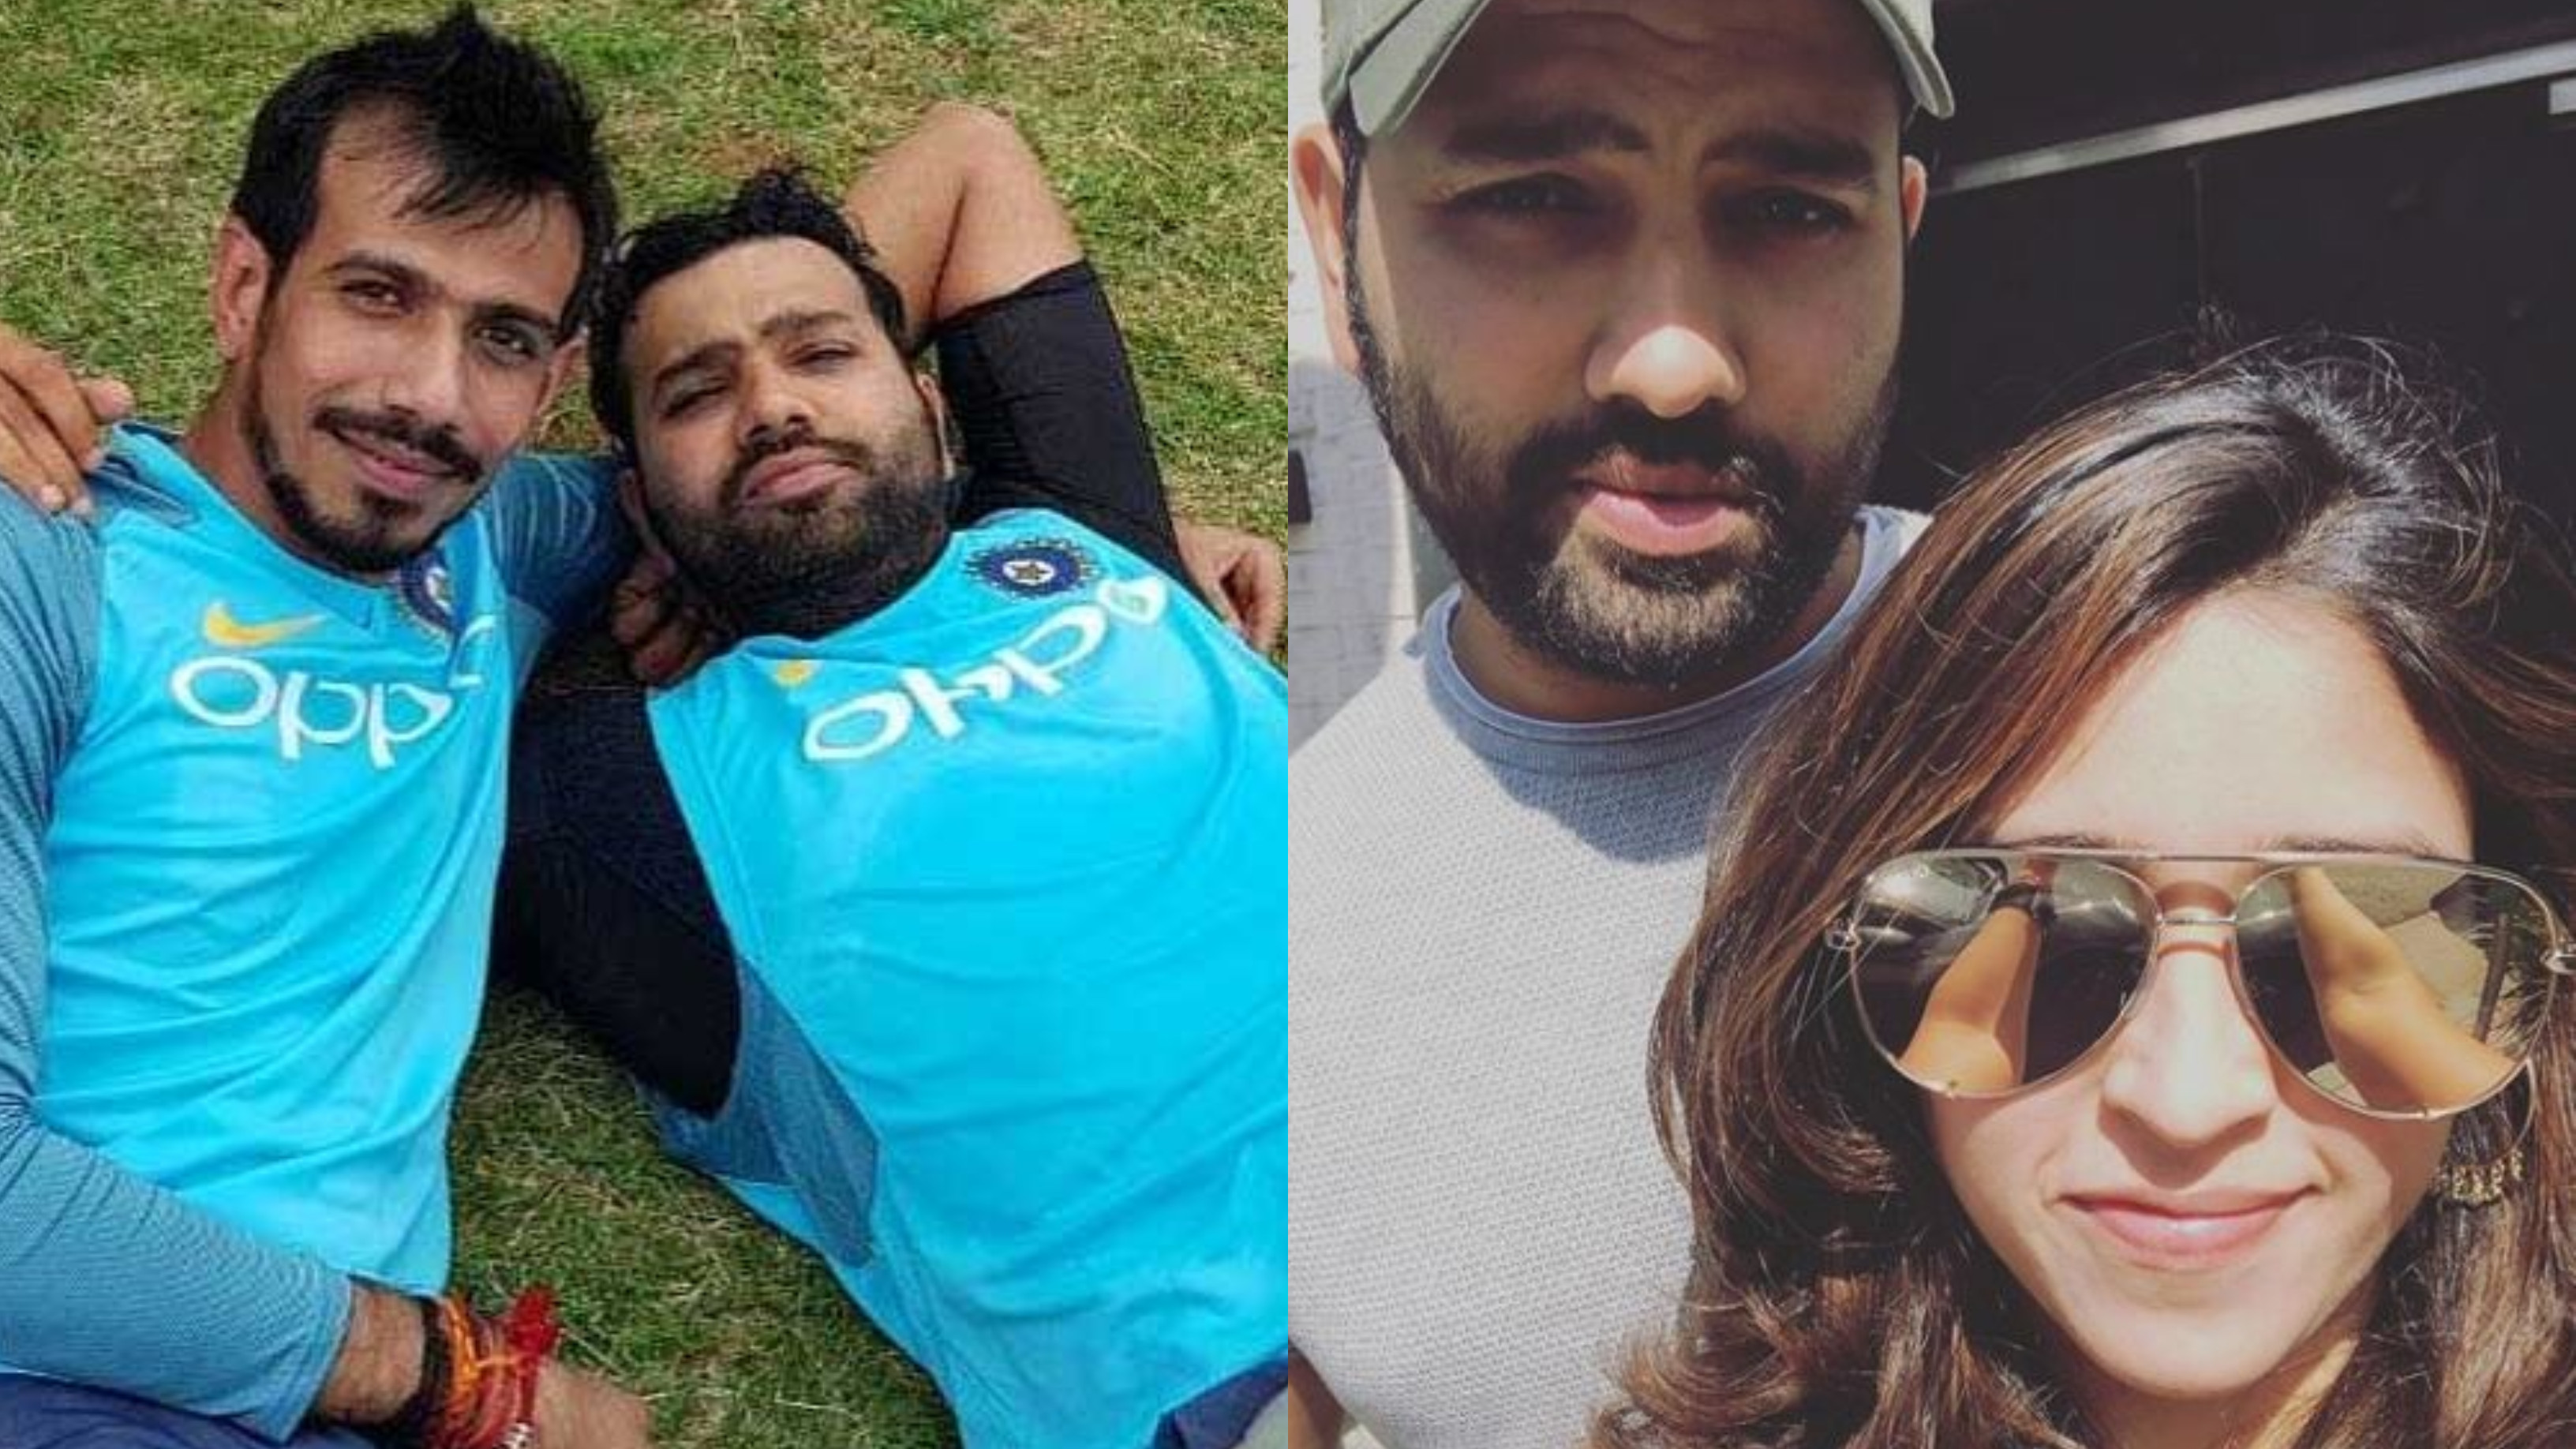 Ritika Sajdeh teases Chahal and asks him to observe karwa chauth for Rohit Sharma with her